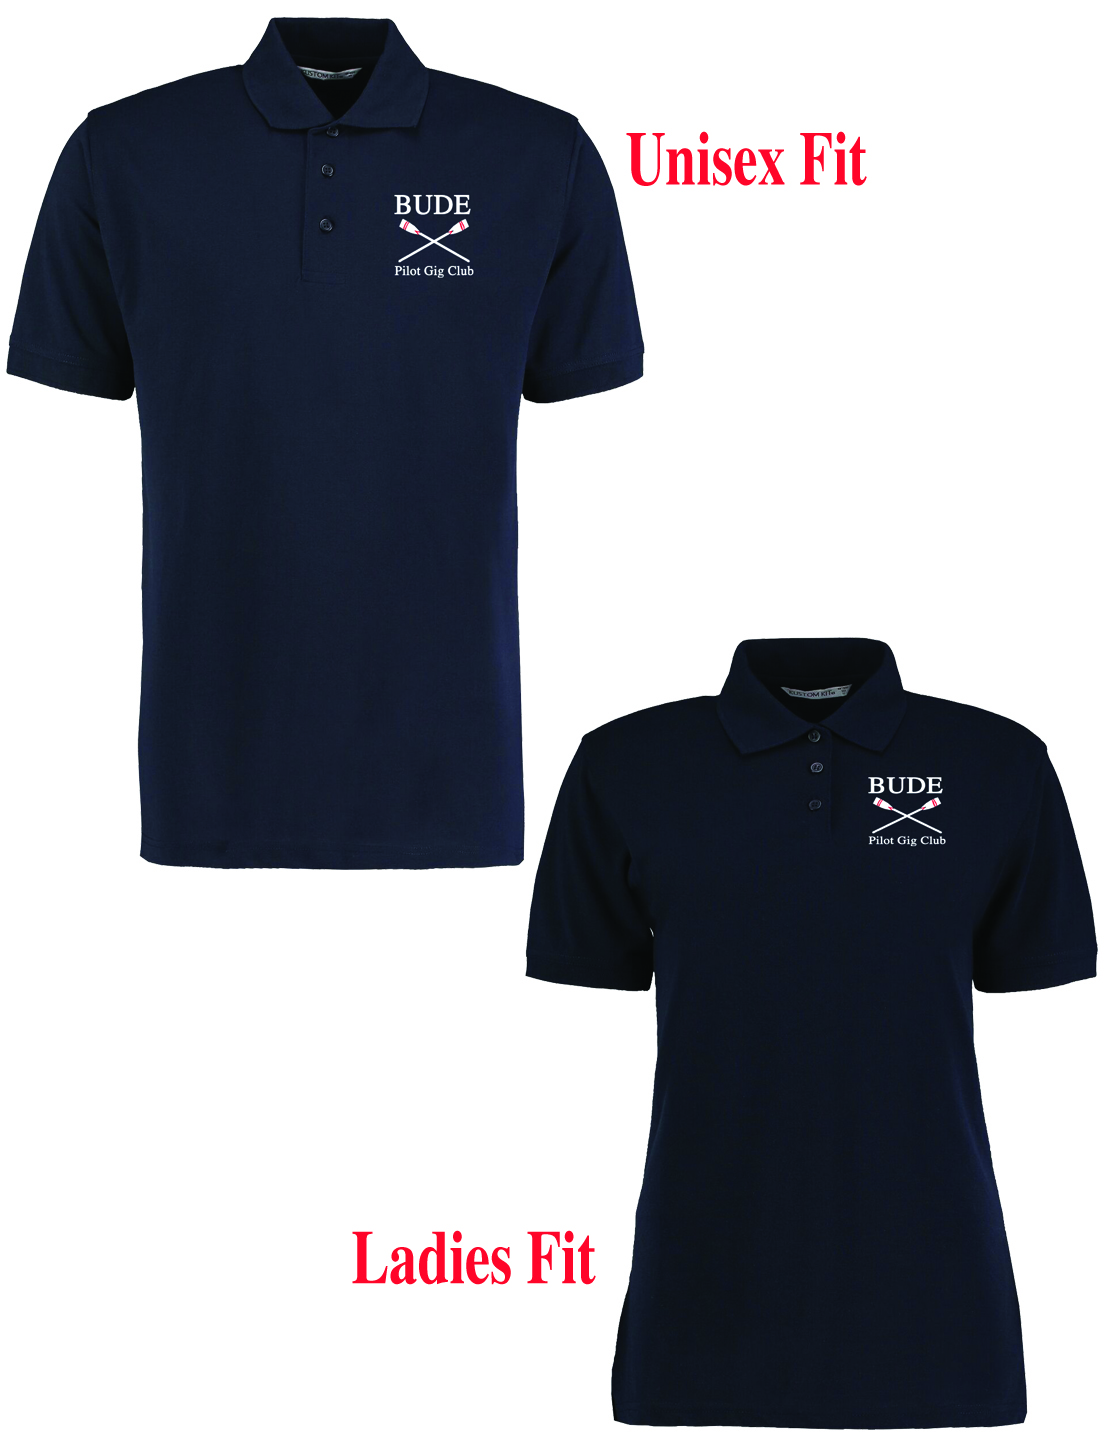 Bude Pilot Gig Club Polo Shirt